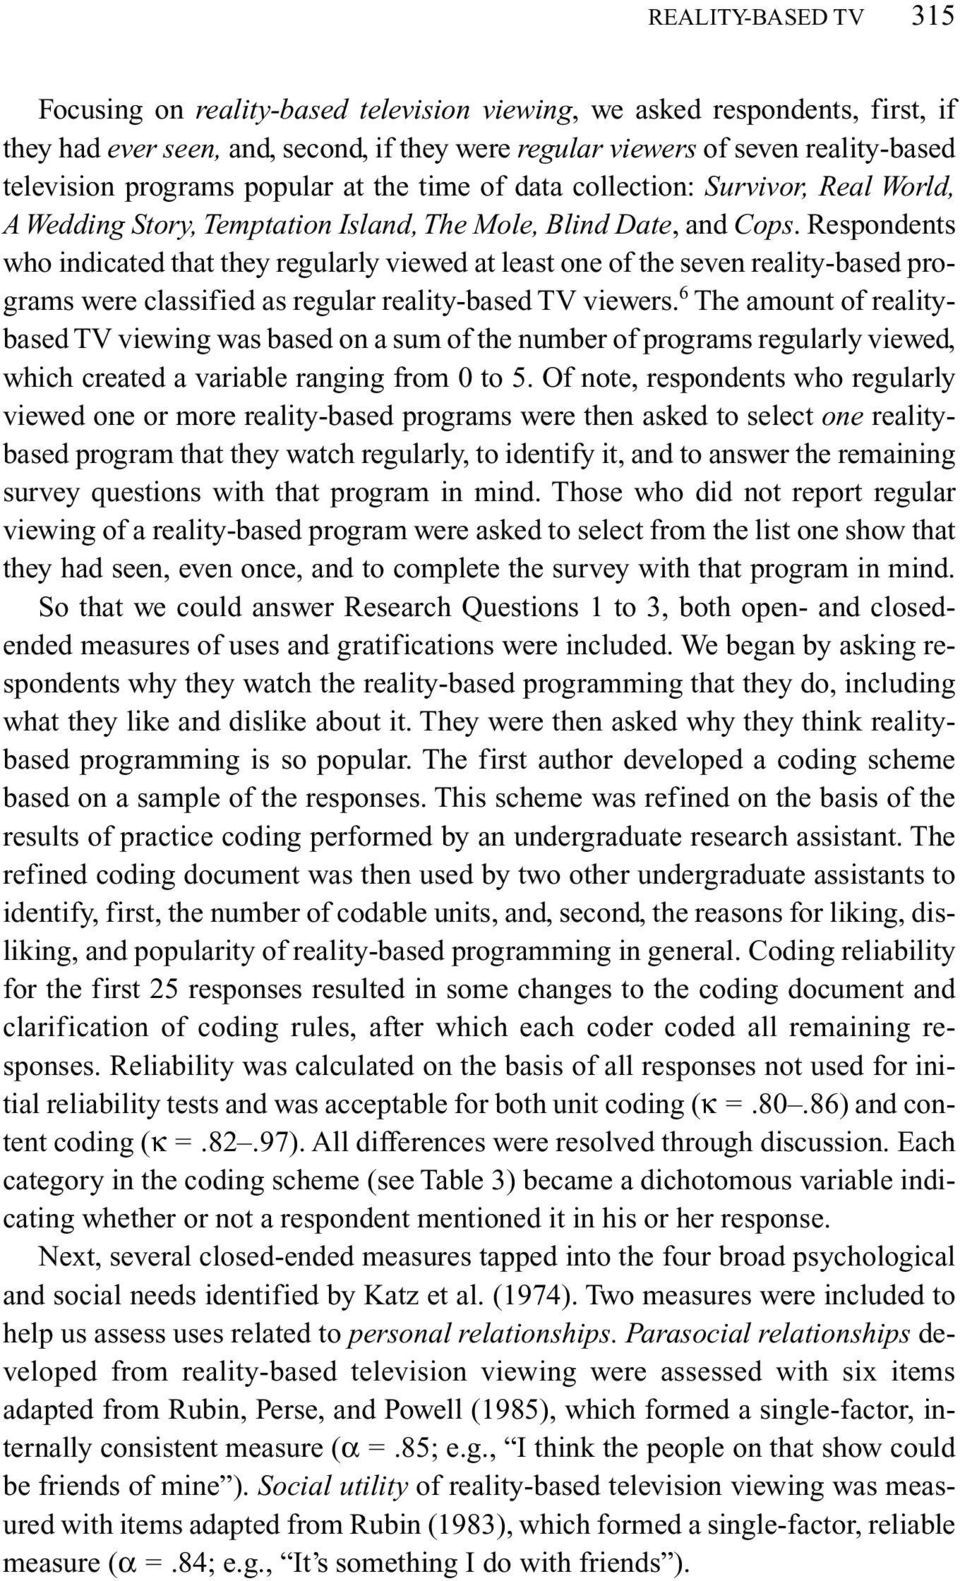 Respondents who indicated that they regularly viewed at least one of the seven reality-based programs were classified as regular reality-based TV viewers.